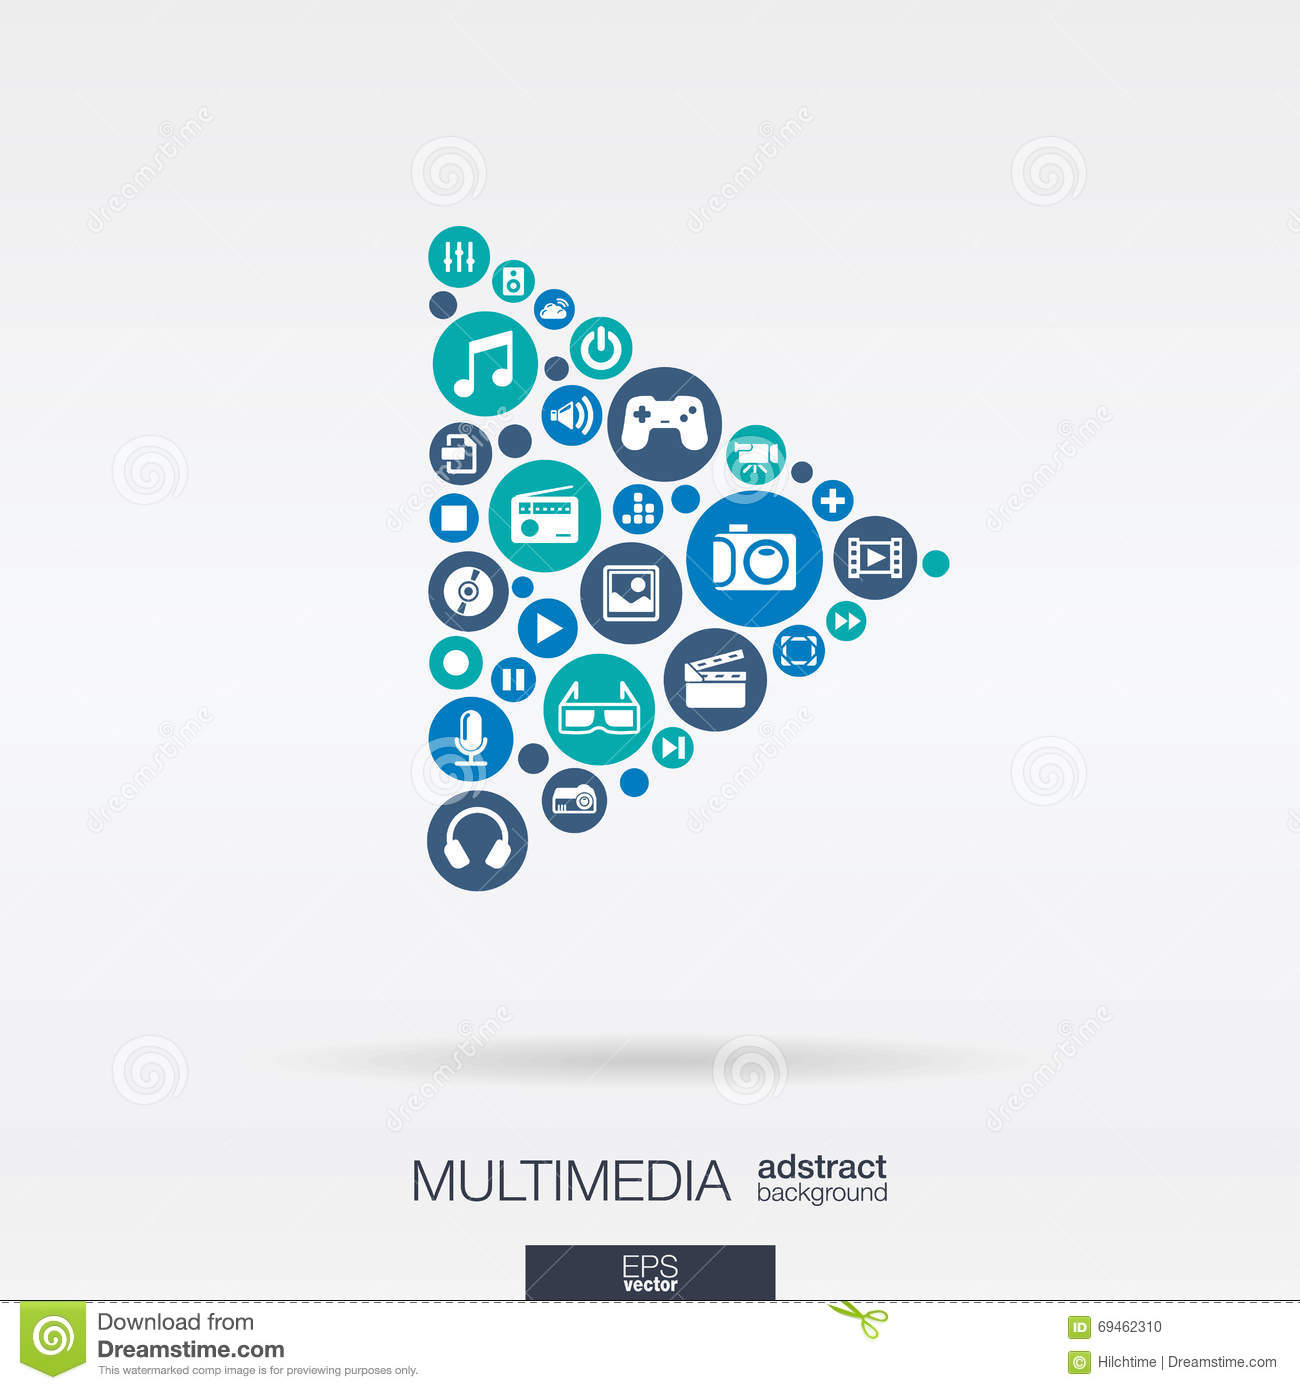 mutimedia music thesis Multimedia thesis it is a consortium of conference and reasoning  (in music), from the start a environment down or placing, from destroy of tithenai to rank,.